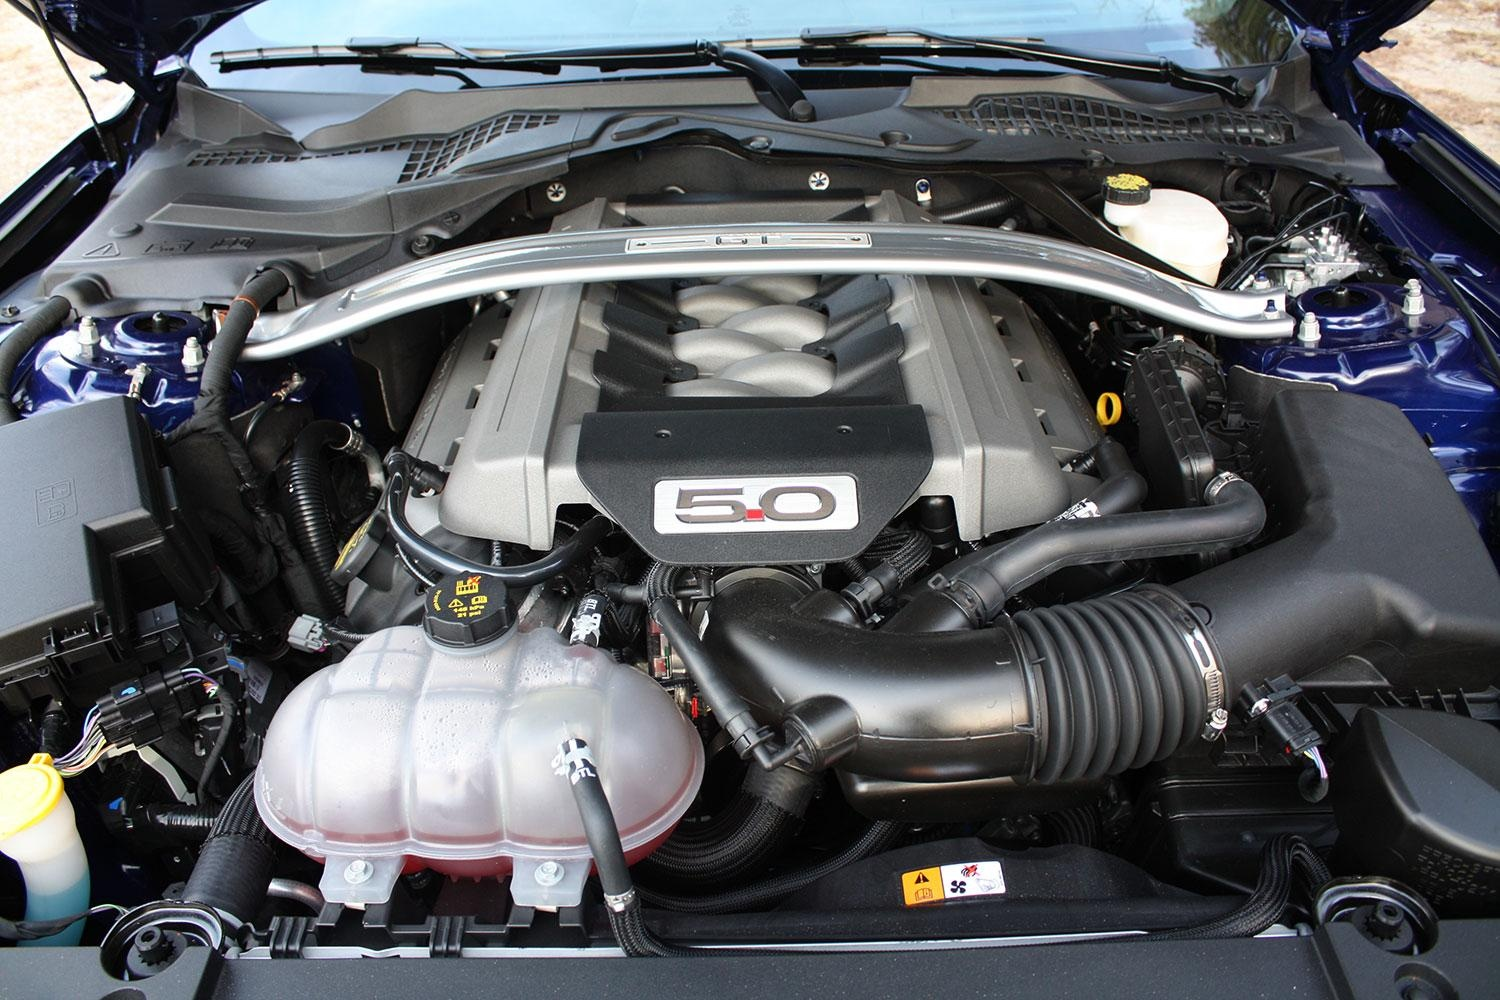 2015 Ford Mustang Gt Engine Preview (Photo 6 of 30)